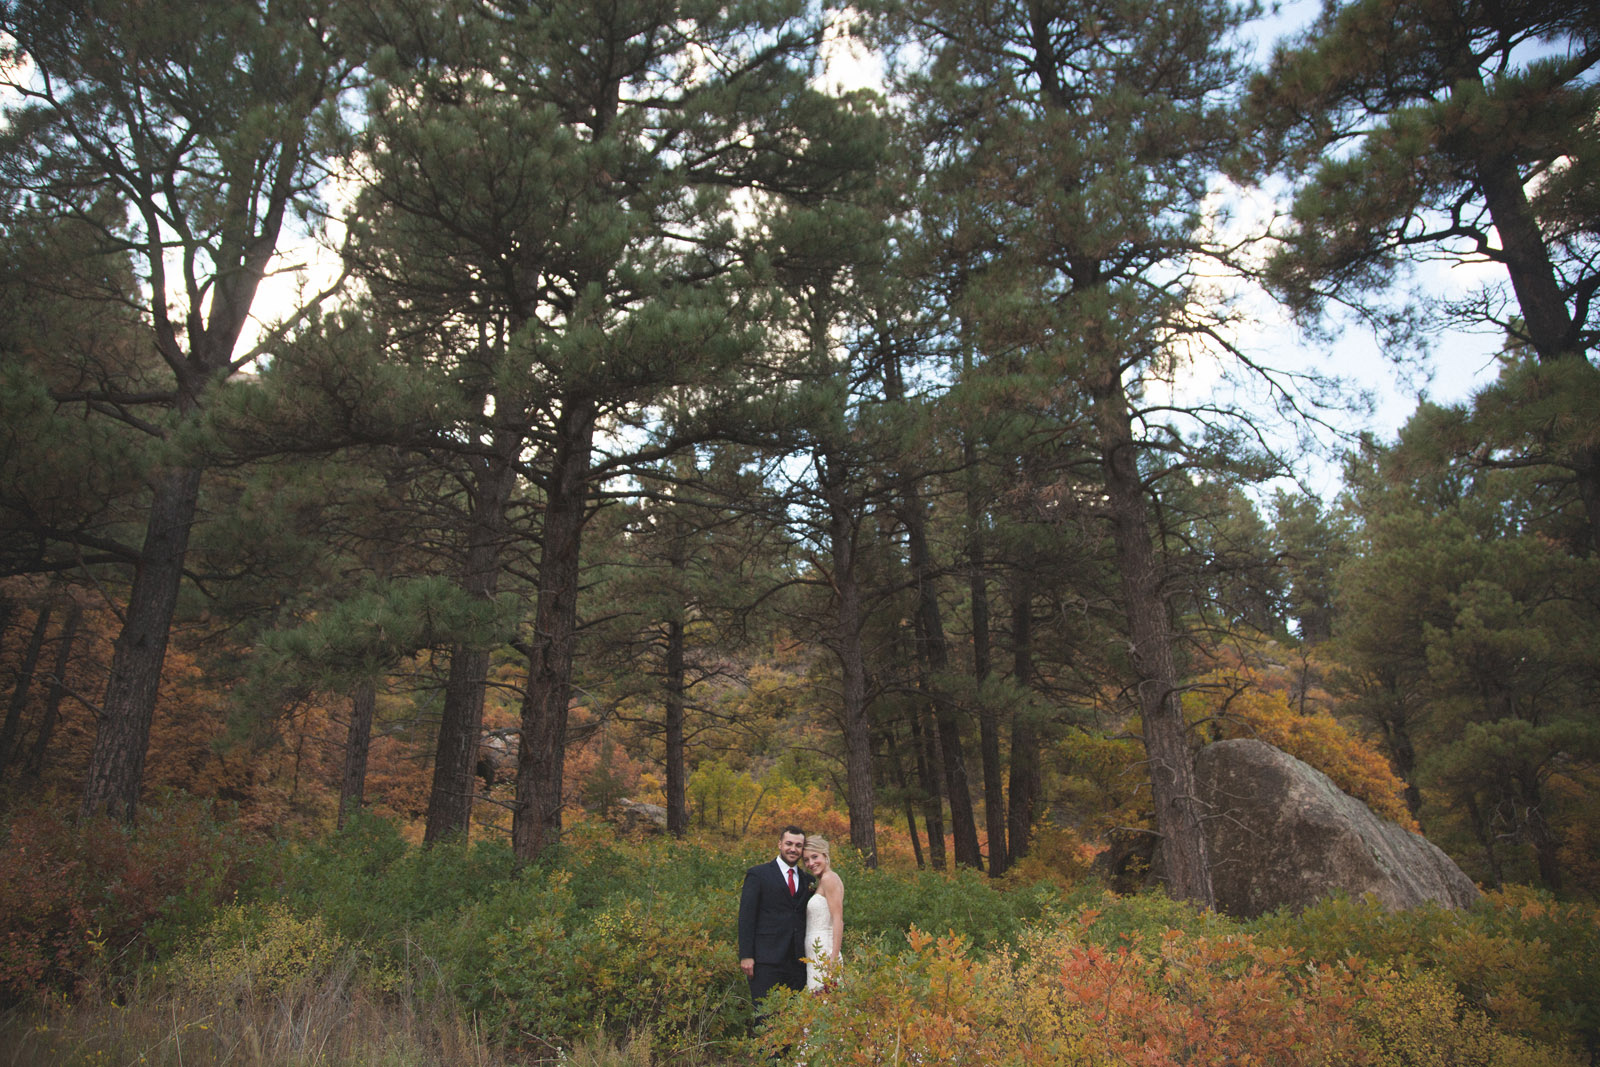 135-beautiful-bride-and-groom-photojournalist-portraits-at-elopement-wedding-in-durango-colorado-forest